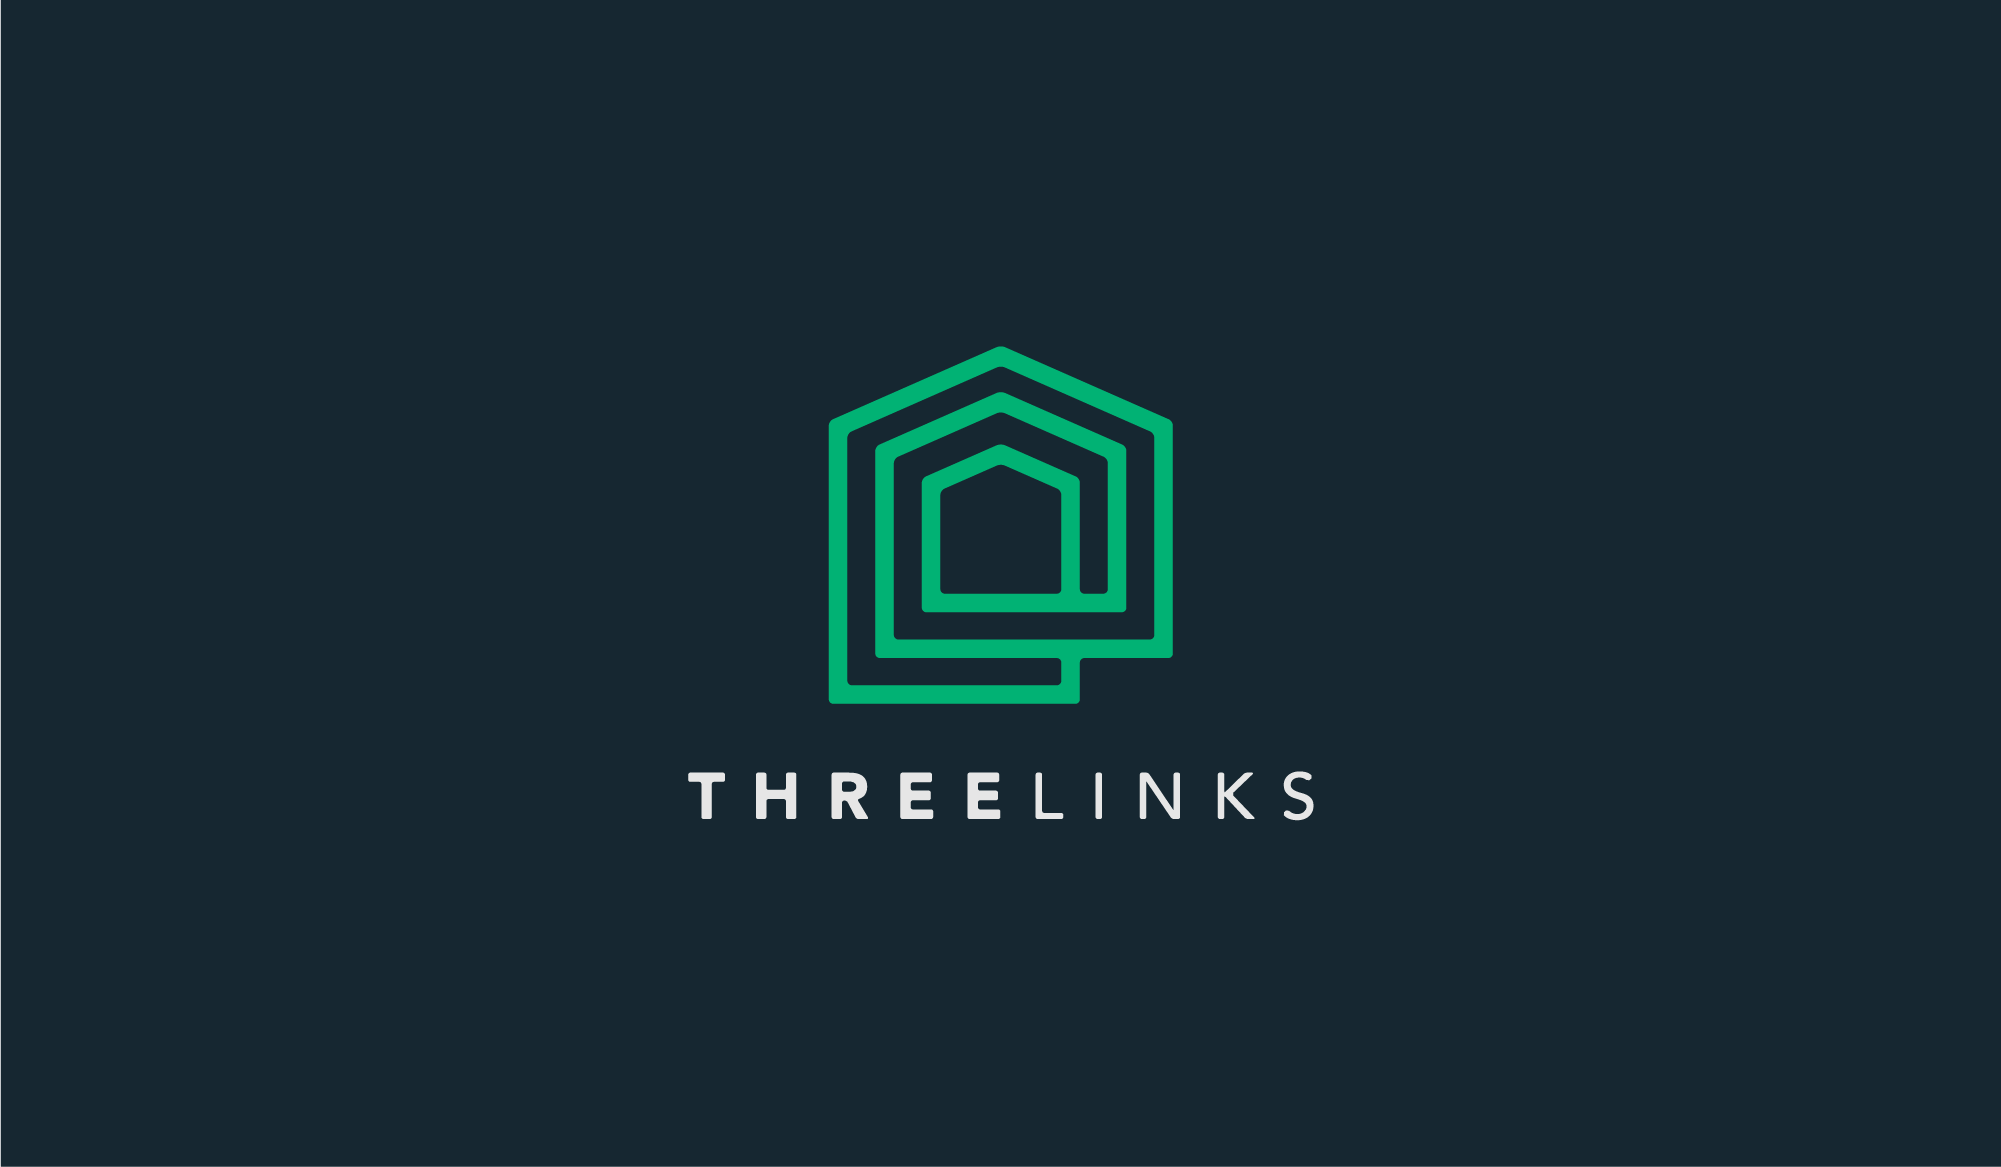 sb-logo-threelinks-26